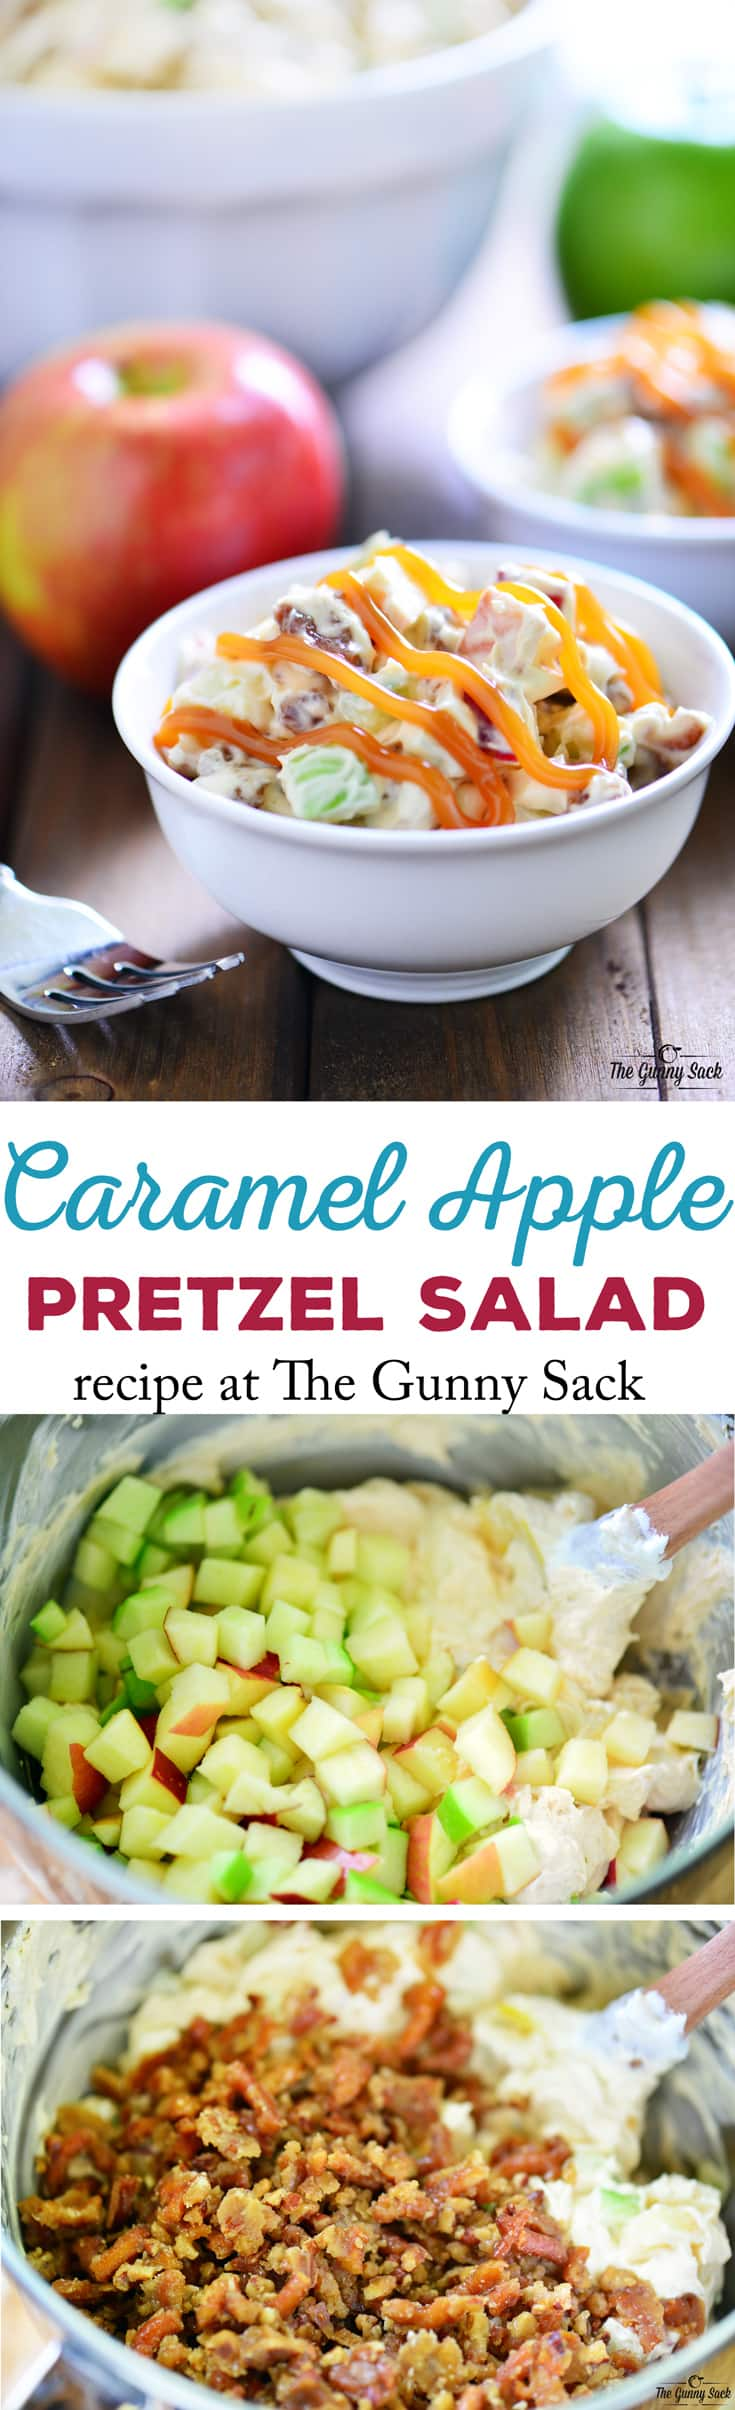 This Caramel Apple Pretzel Salad recipe is a delicious way to enjoy a taste of fall with crunchy apples, candied pretzels, and sweet caramel sauce.